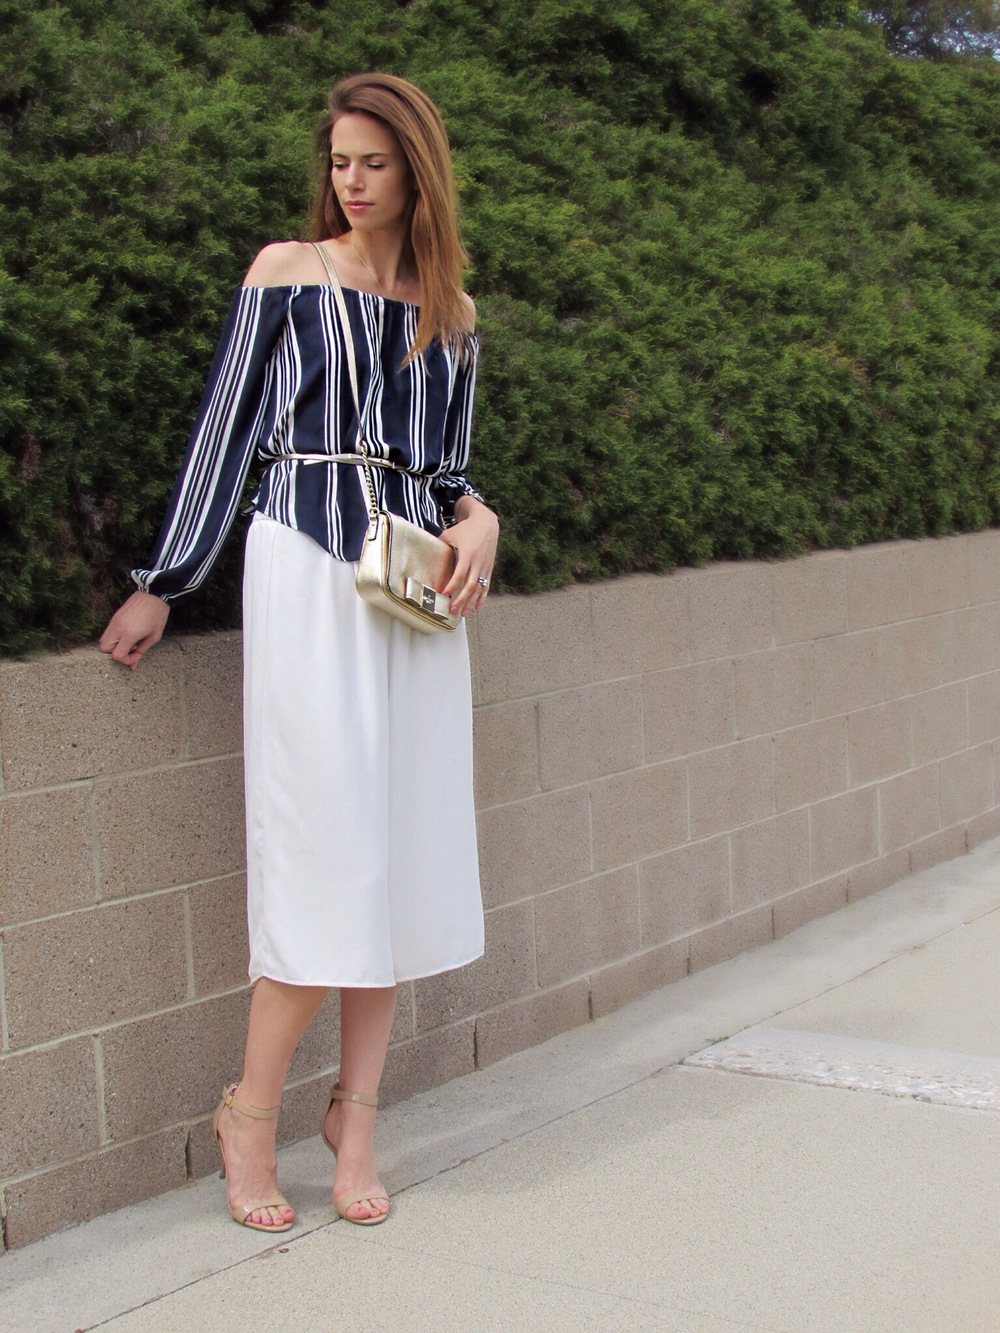 Blouse, culottes, similar belt, bag, heels